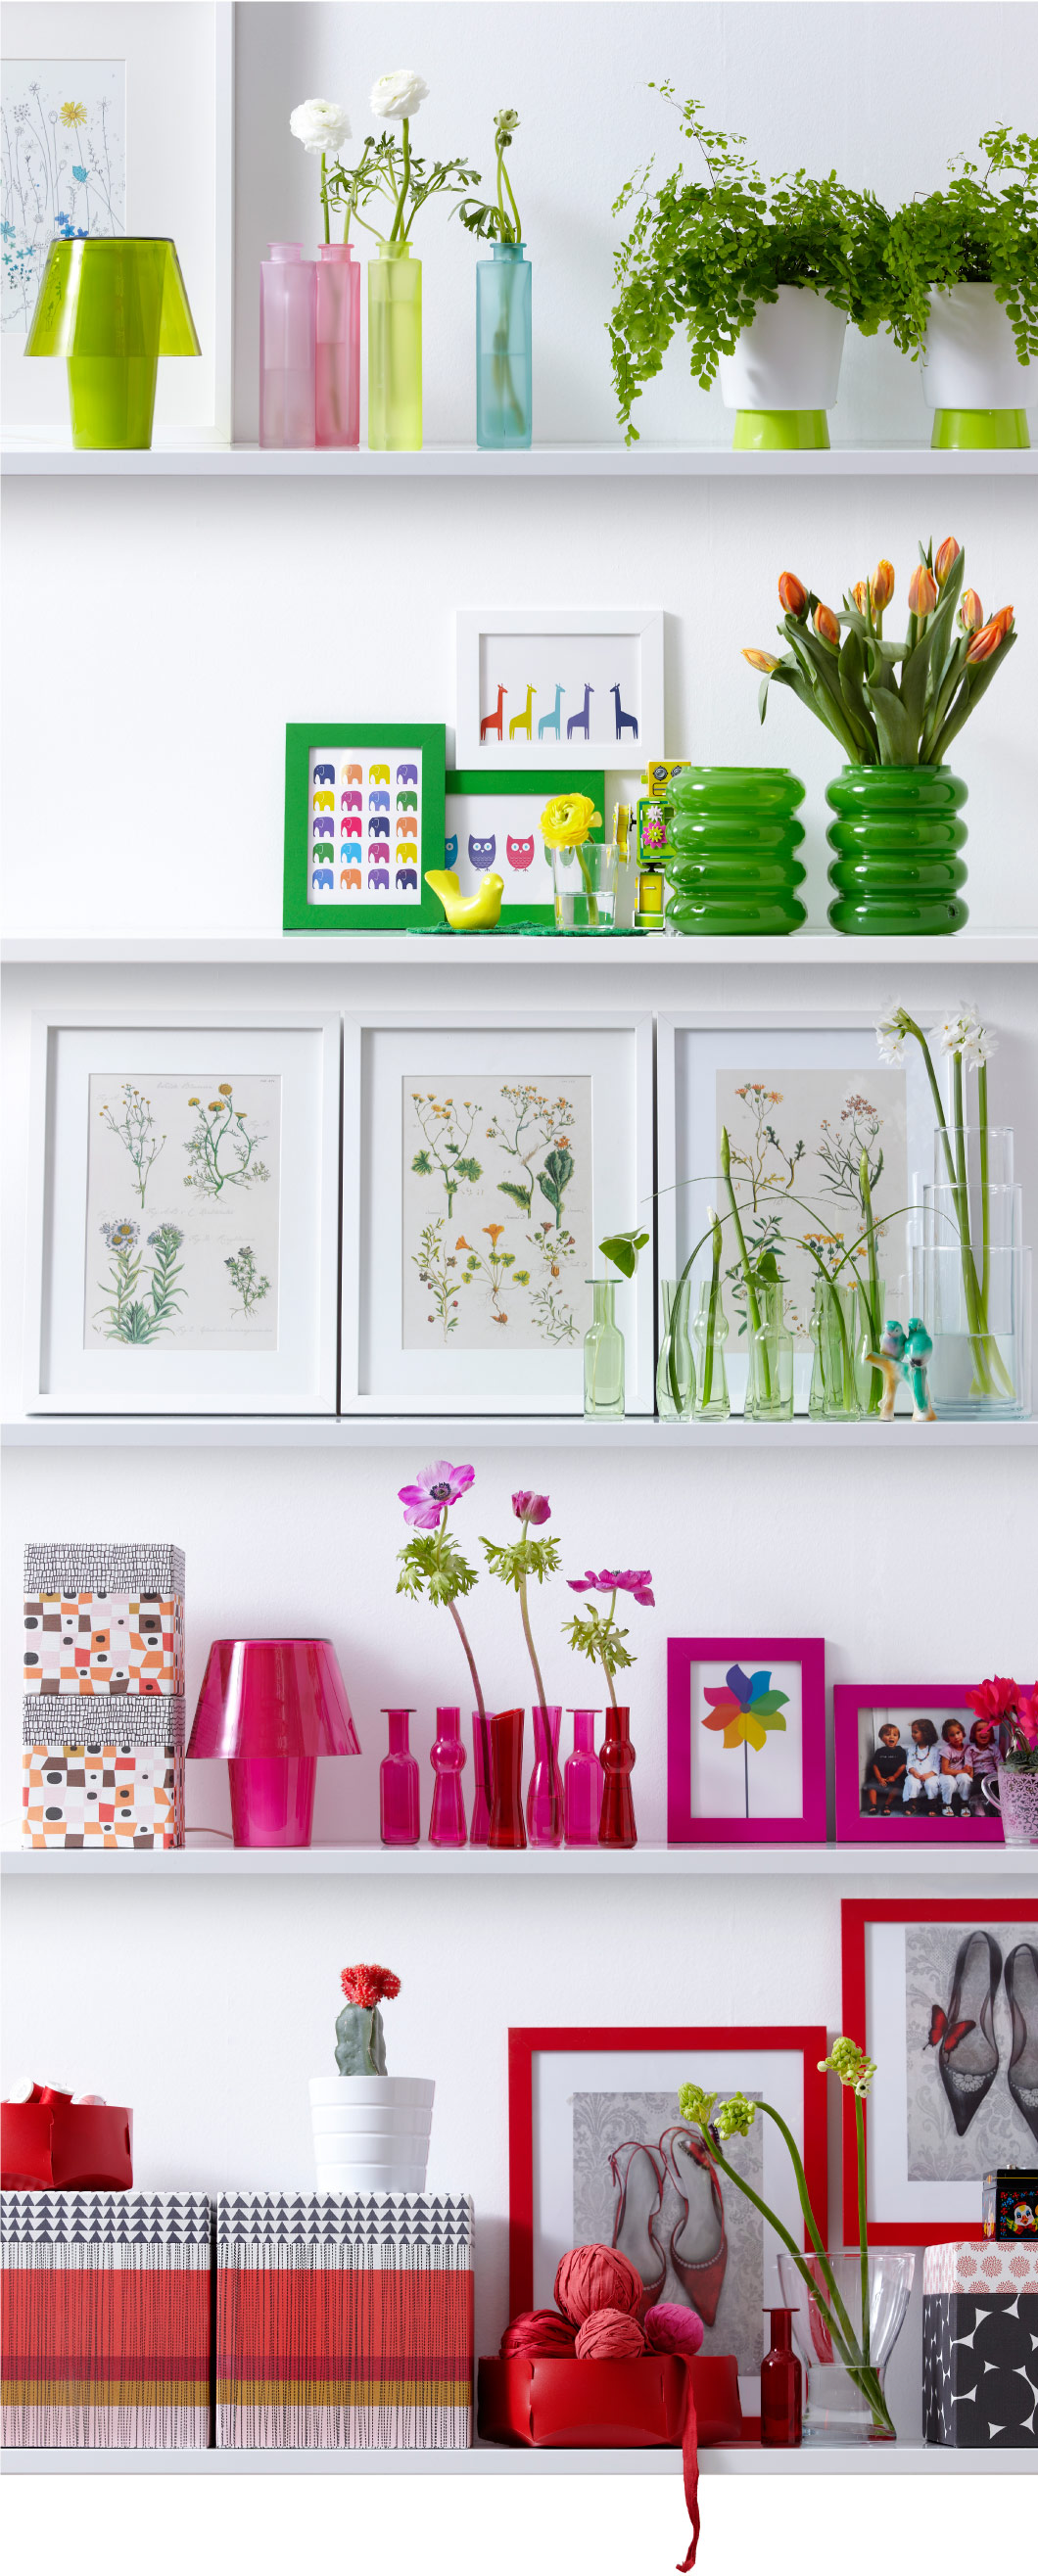 Display of posters, vases and boxes in matching colors